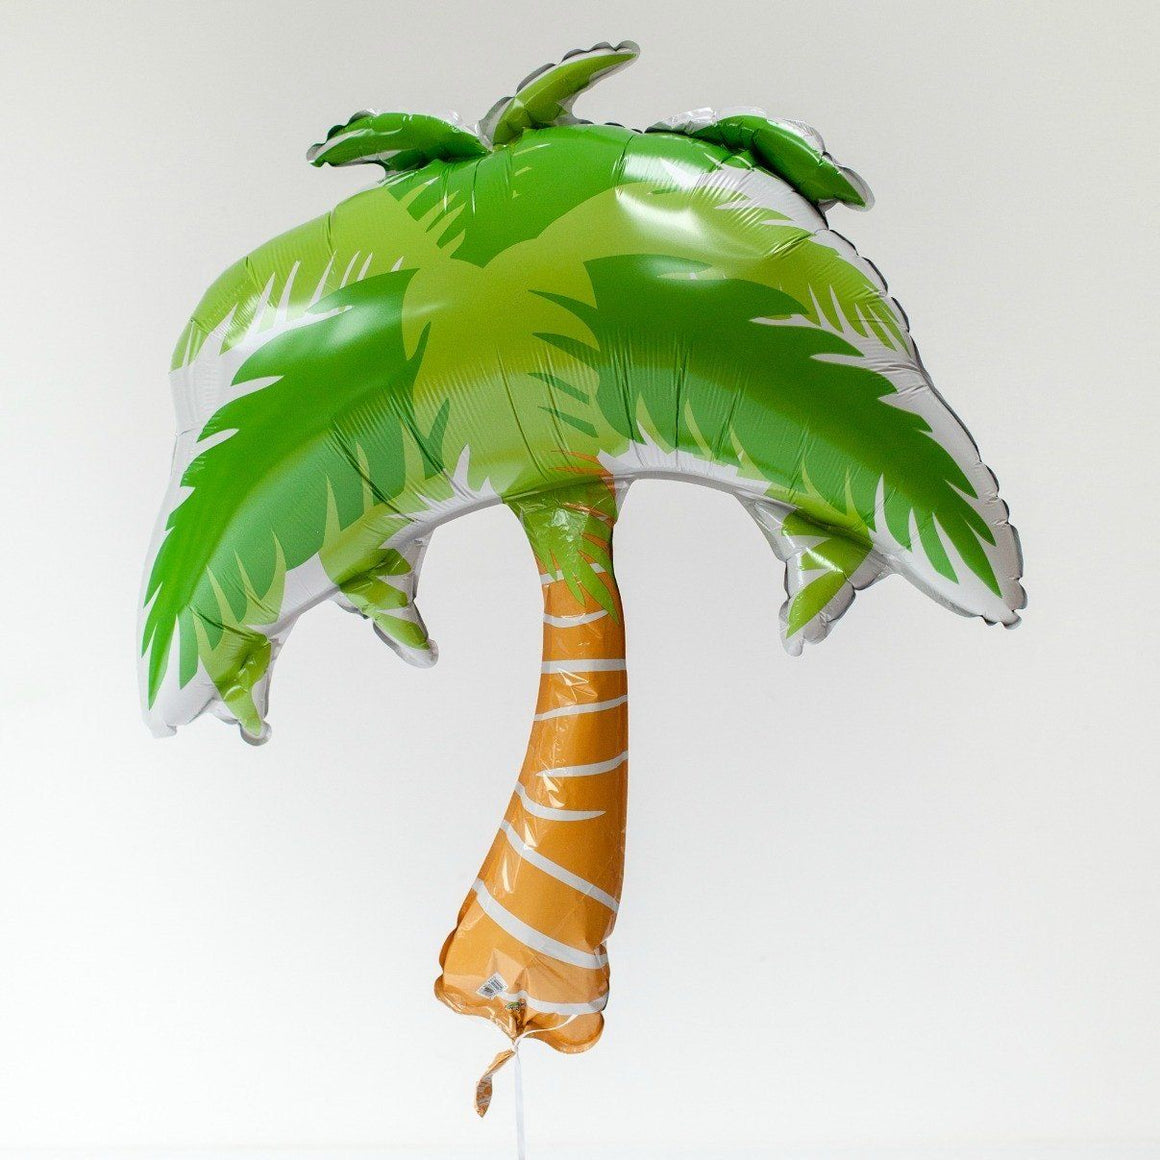 BALLOONS - TROPICAL PALM TREE